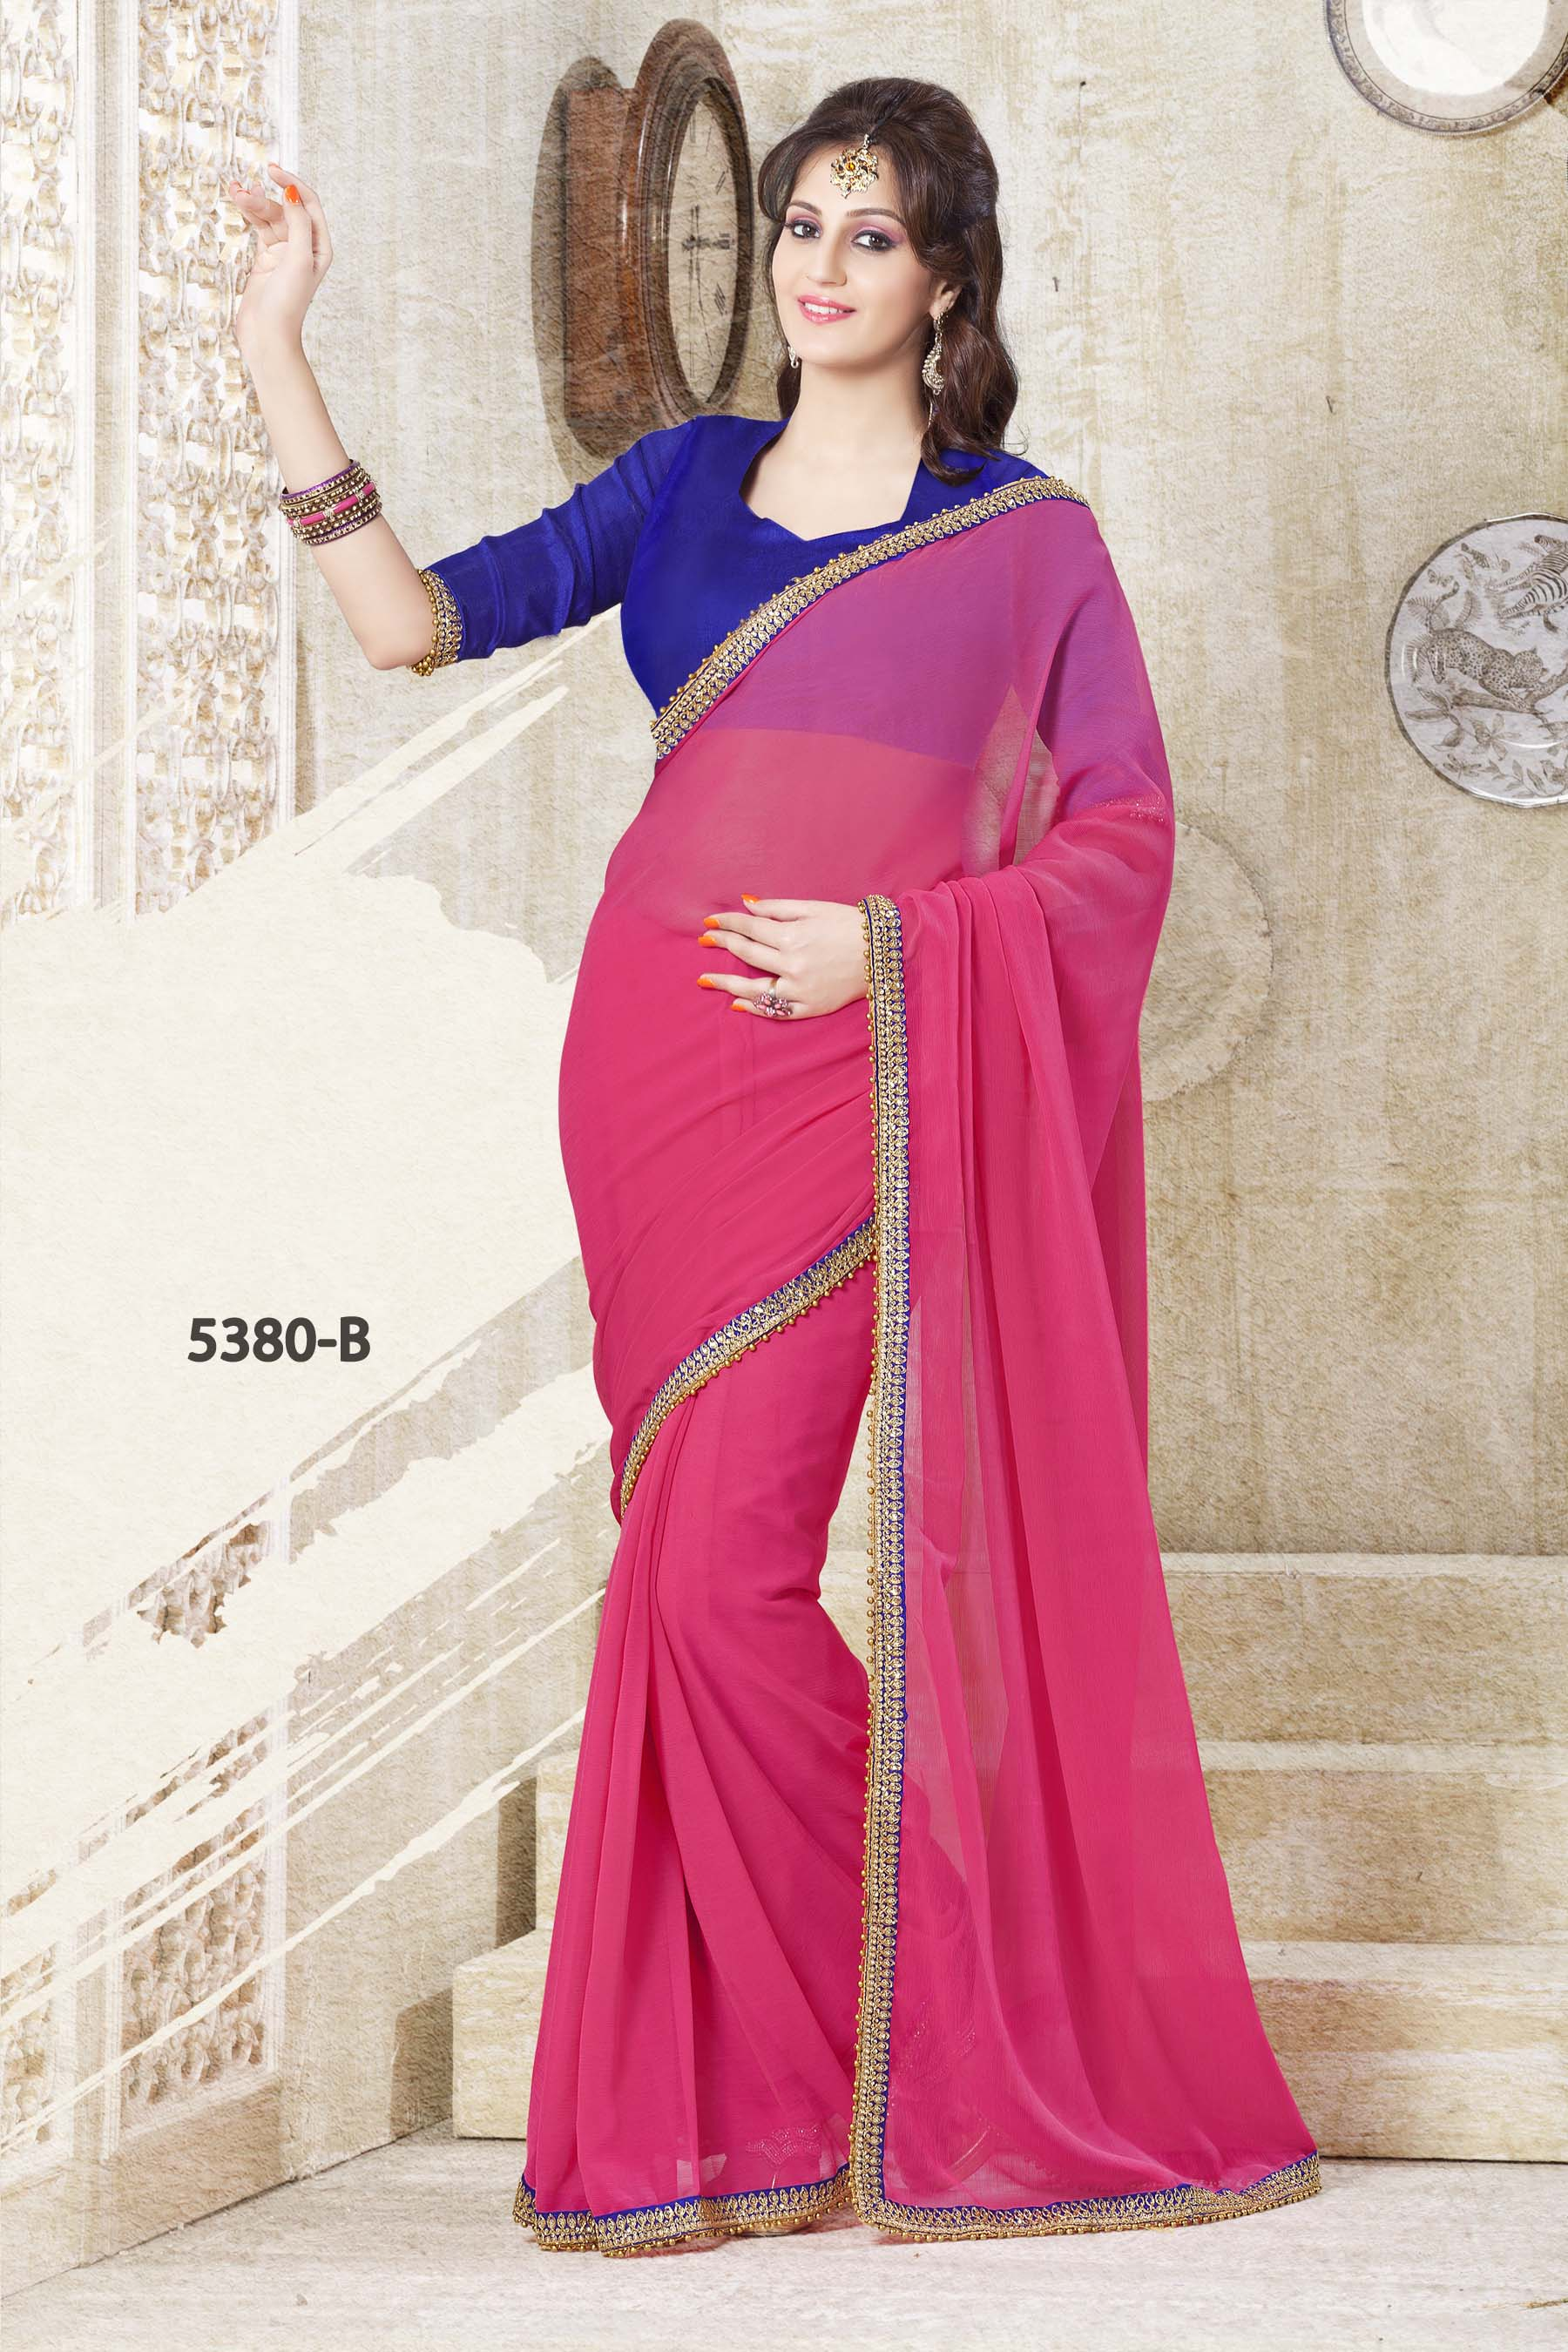 d086ad9659343 PINK PLAIN SAREE WITH CONTRAST BLOUSE - FASHION ERA - 279853